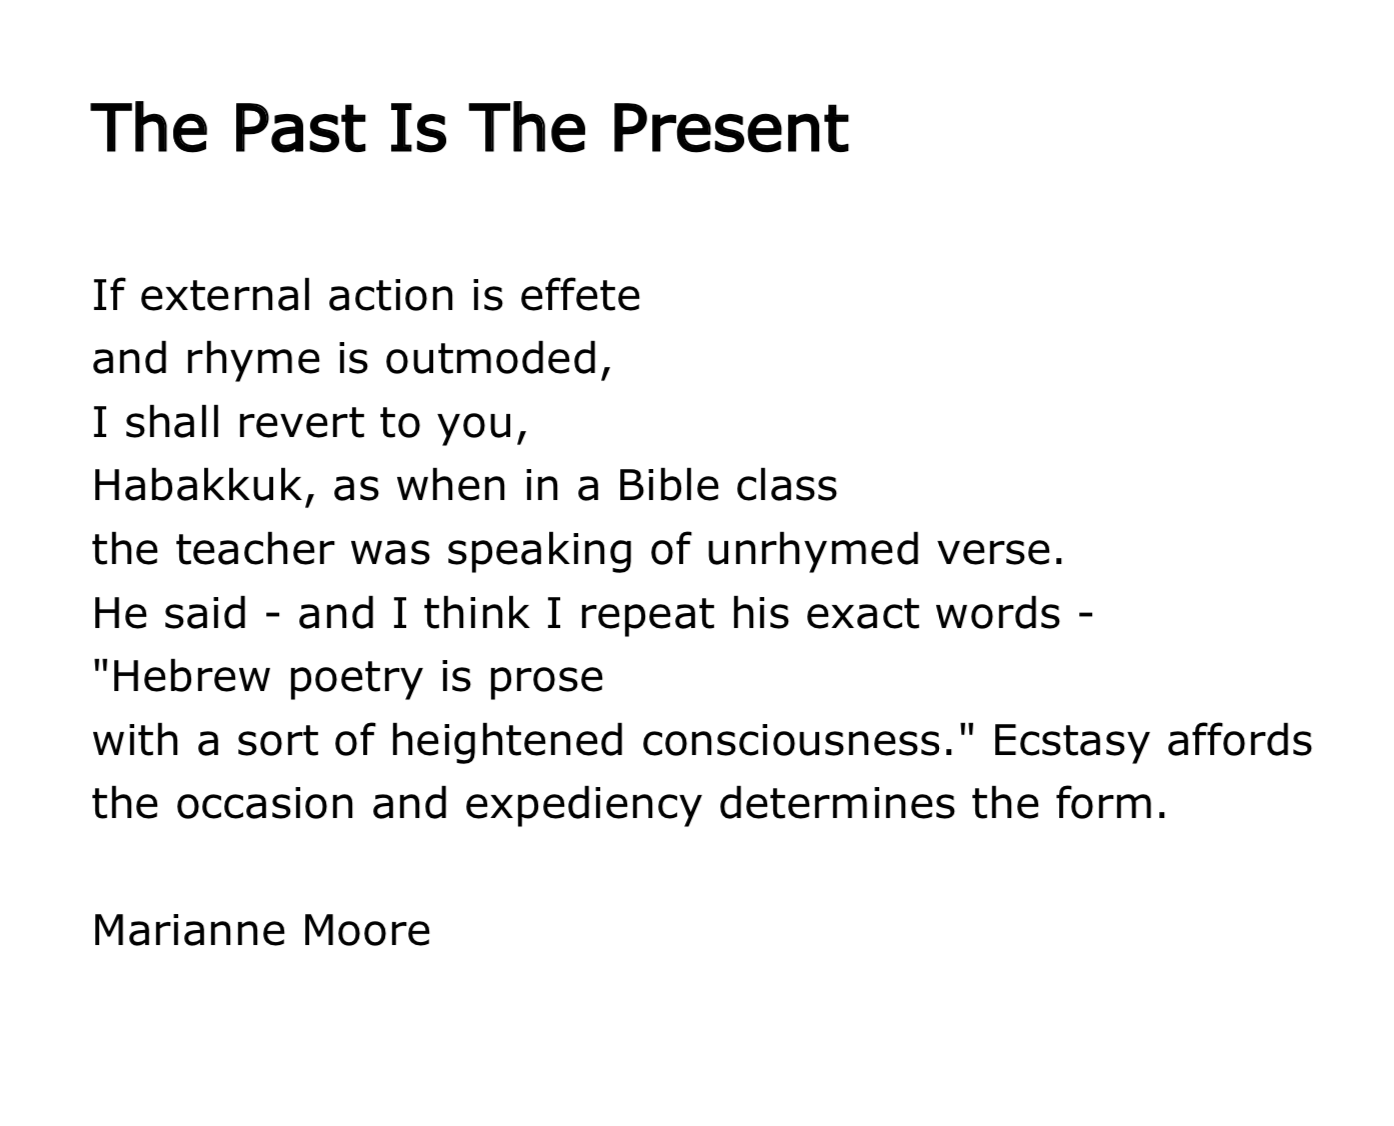 Marianne Moore Poems 1